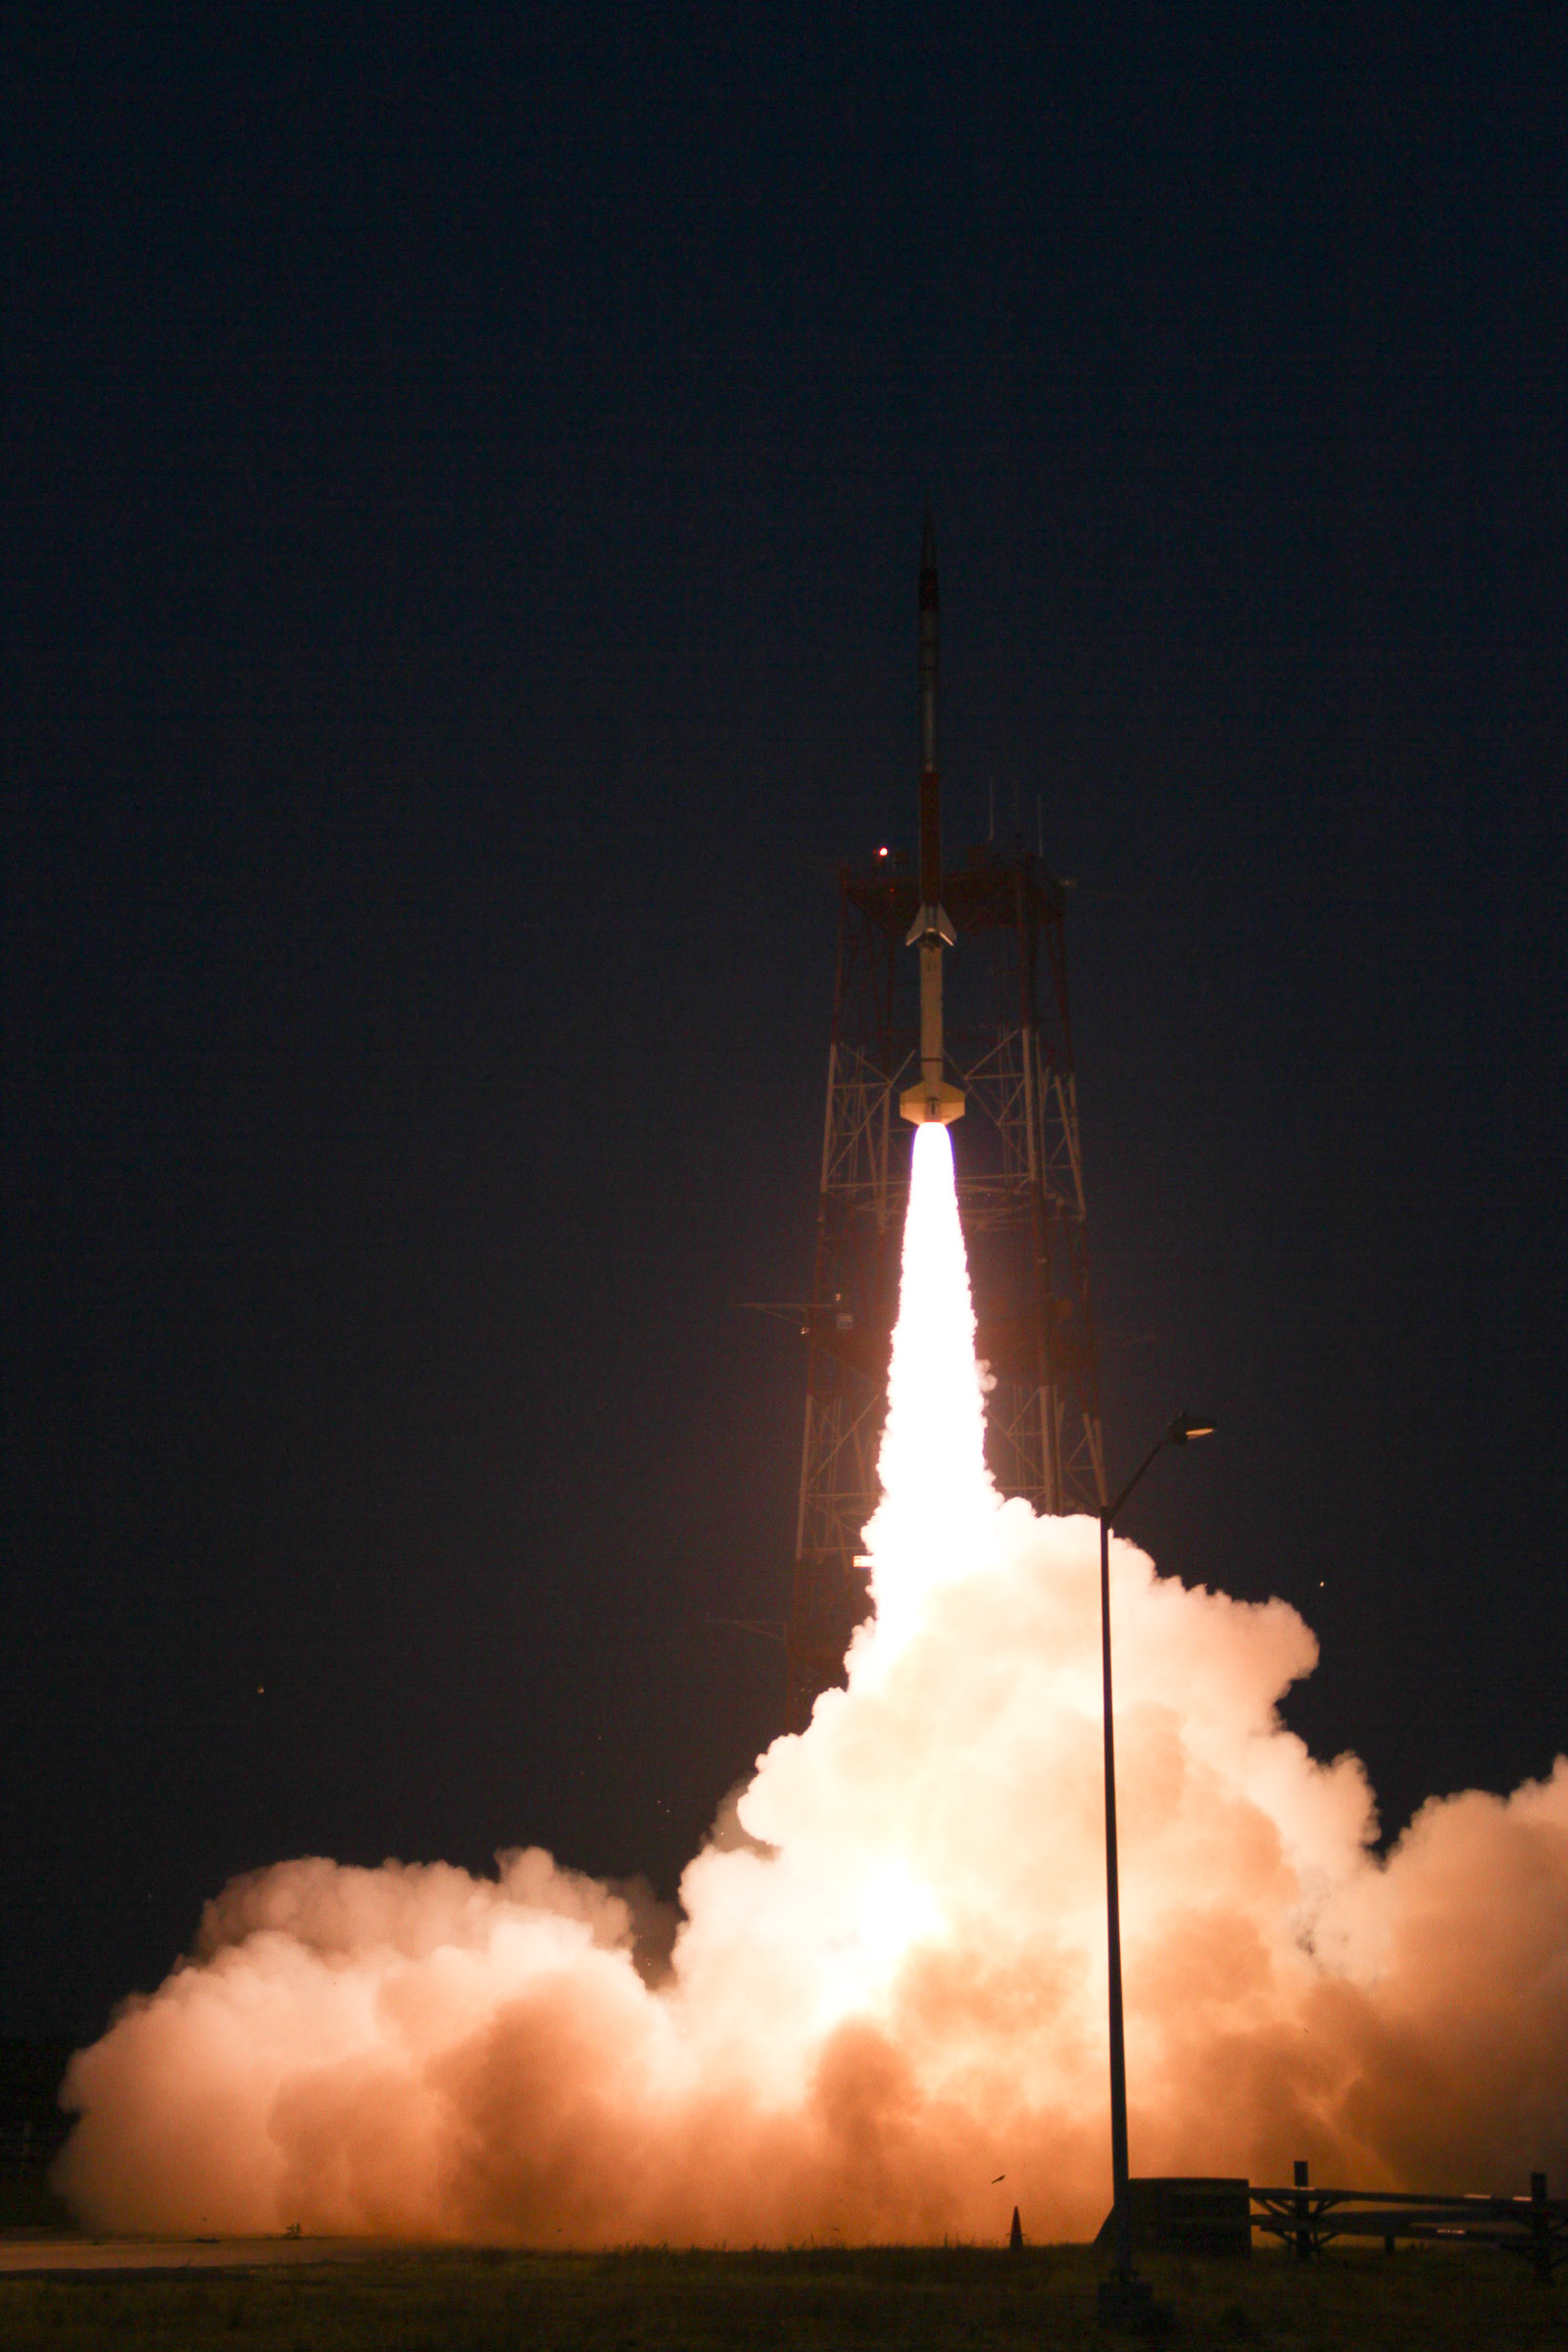 A Terrier-Improved Malemute suborbital rocket carrying experiments developed by university students nationwide in the RockSat-X program was successfully launched at 6 a.m. EDT August 13. Image Credit: NASA/Chris Perry